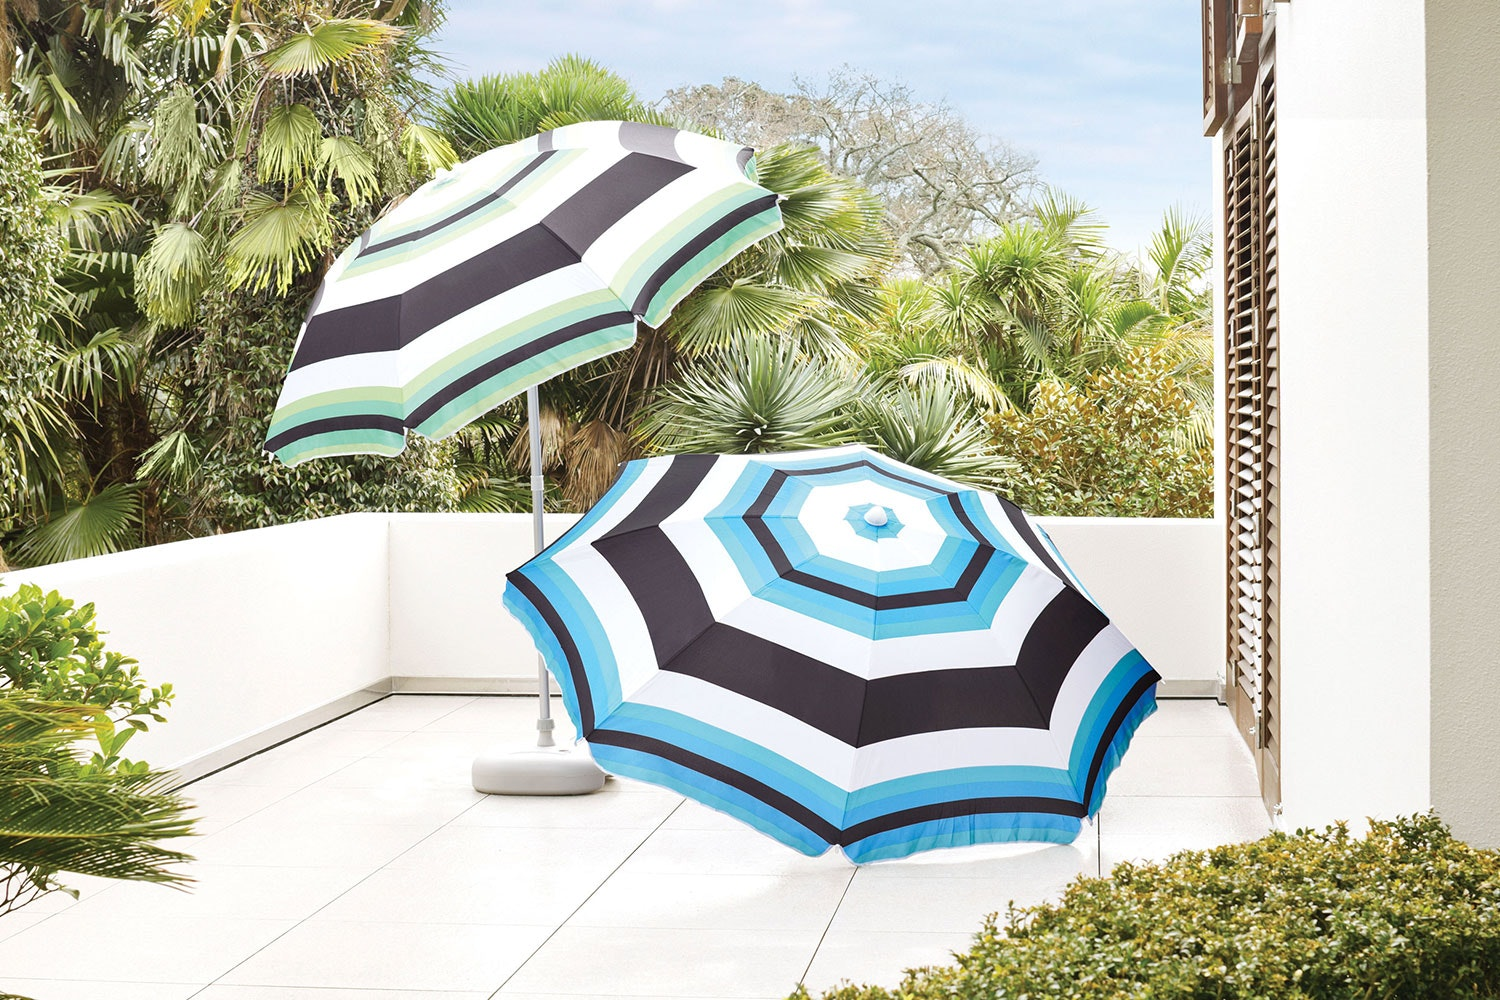 Piha Beach Umbrella Package by Peros